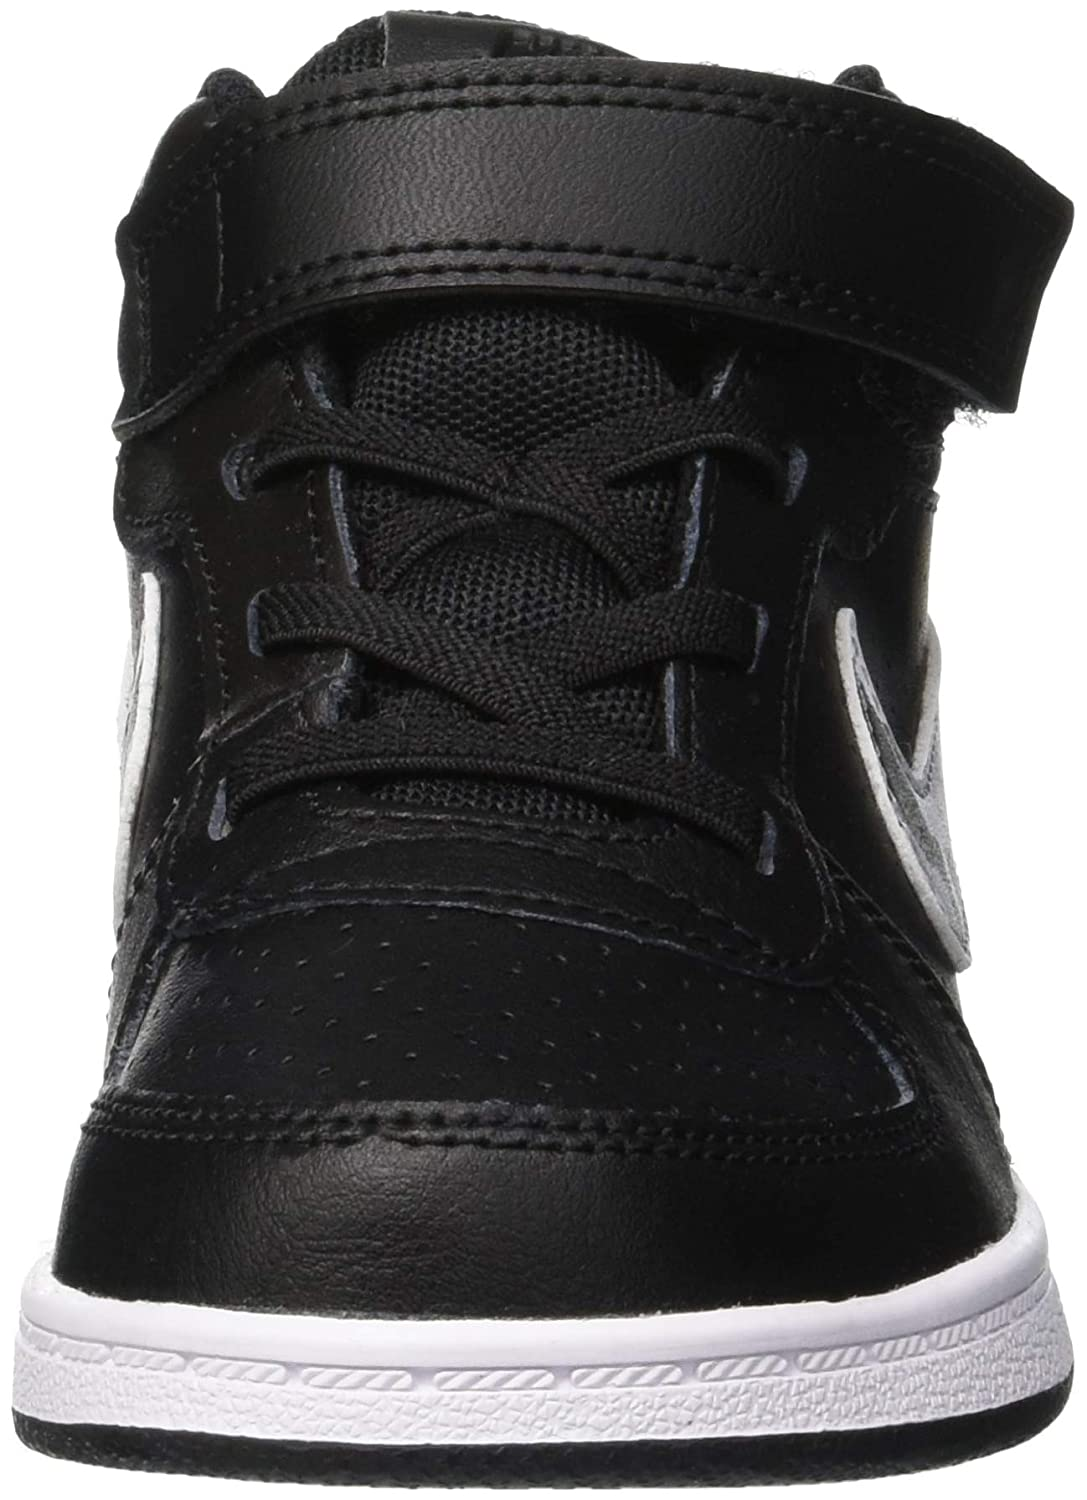 TDV Chaussures de Basketball Mixte Enfant Nike Court Borough Mid